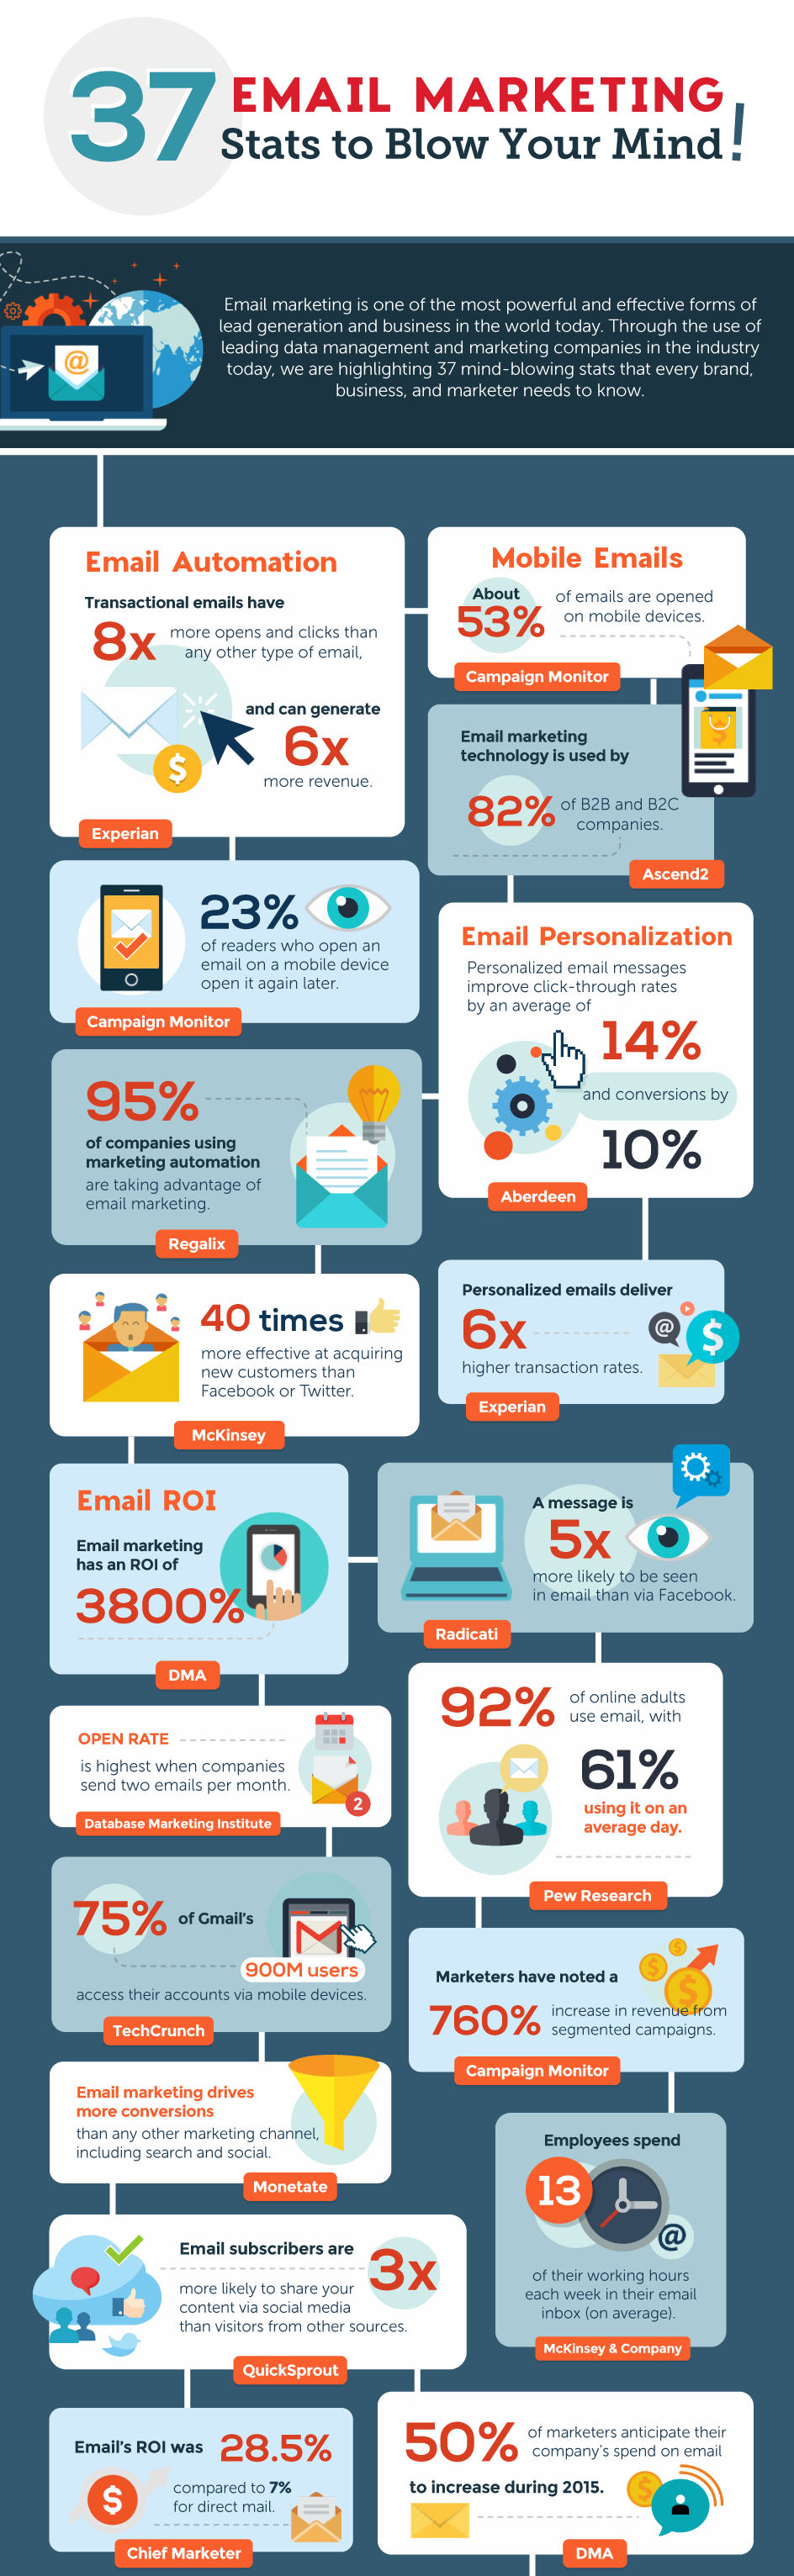 37 email marketing stats to blow your mind hd 1